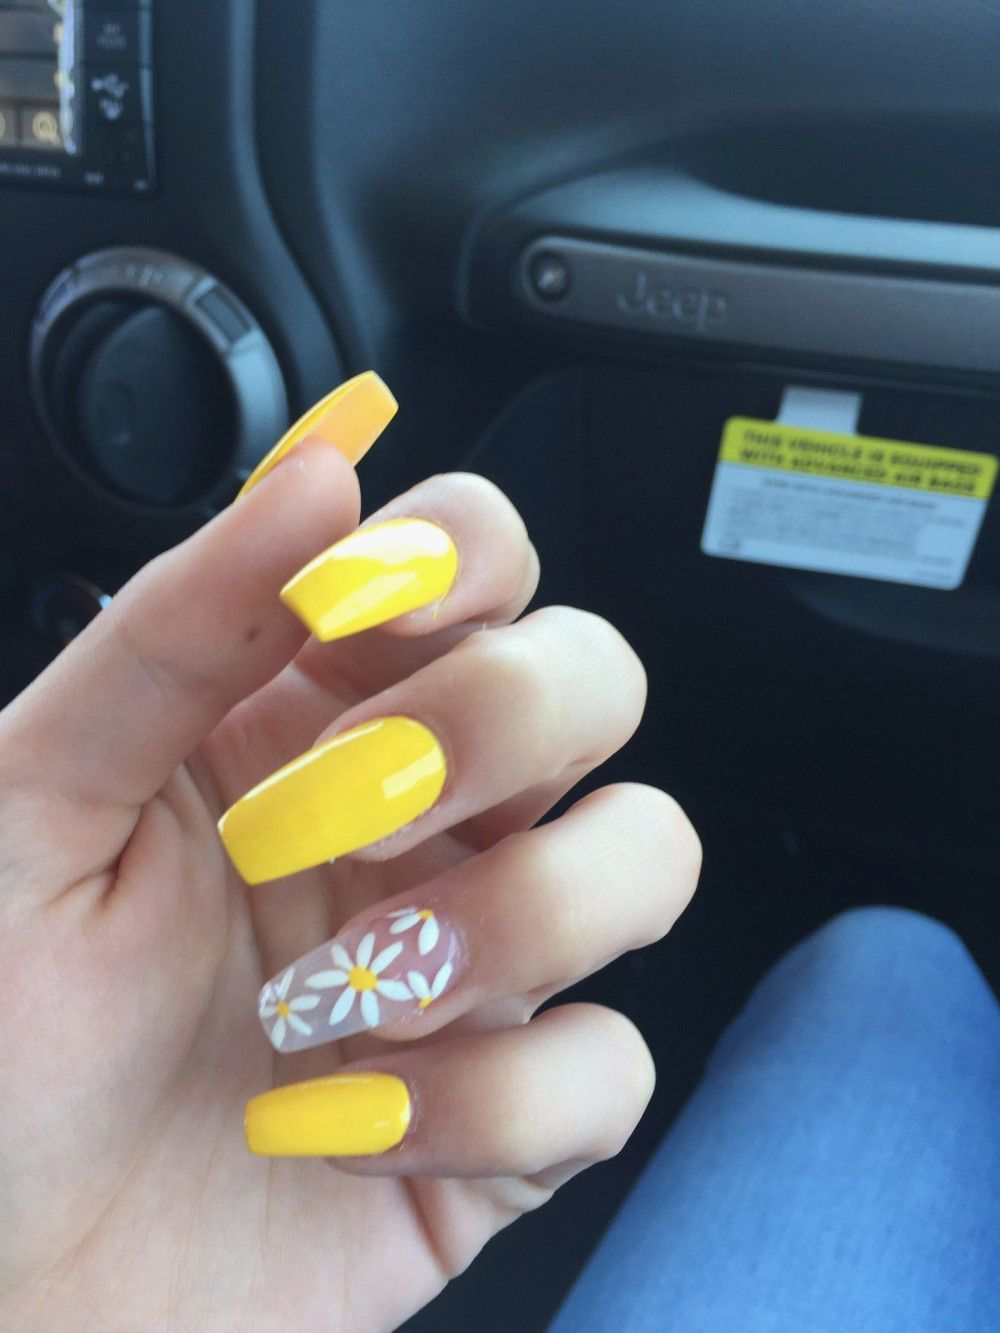 23 Simple Flower Nail Designs Yellow Nails Design Sunflower Nails Flower Nail Designs